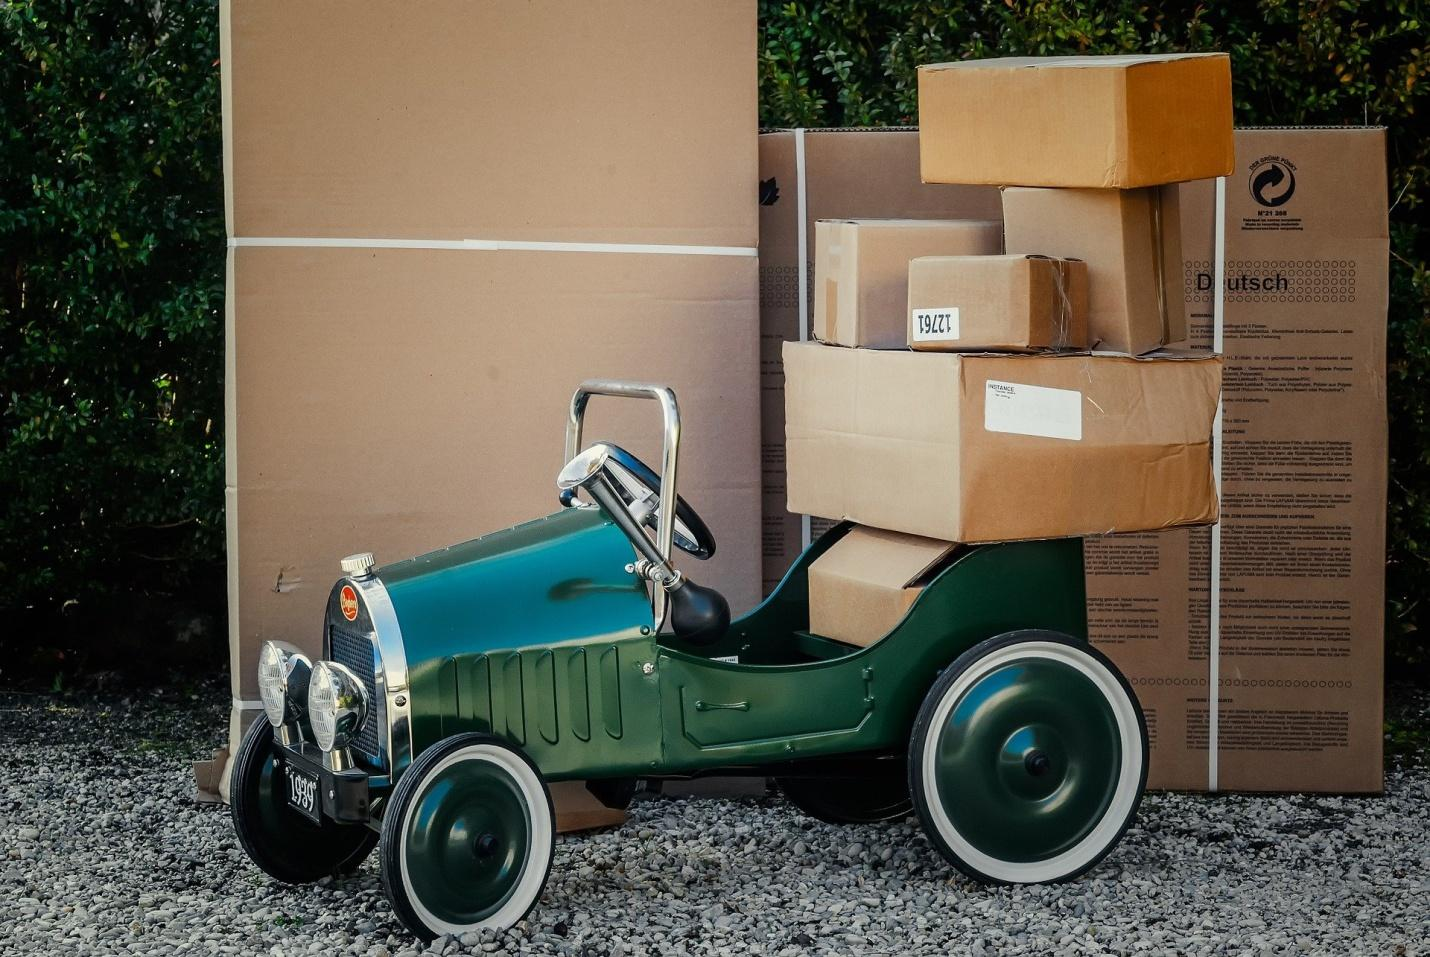 The Top Factors You Should Consider When Looking for a Fulfilment Provider